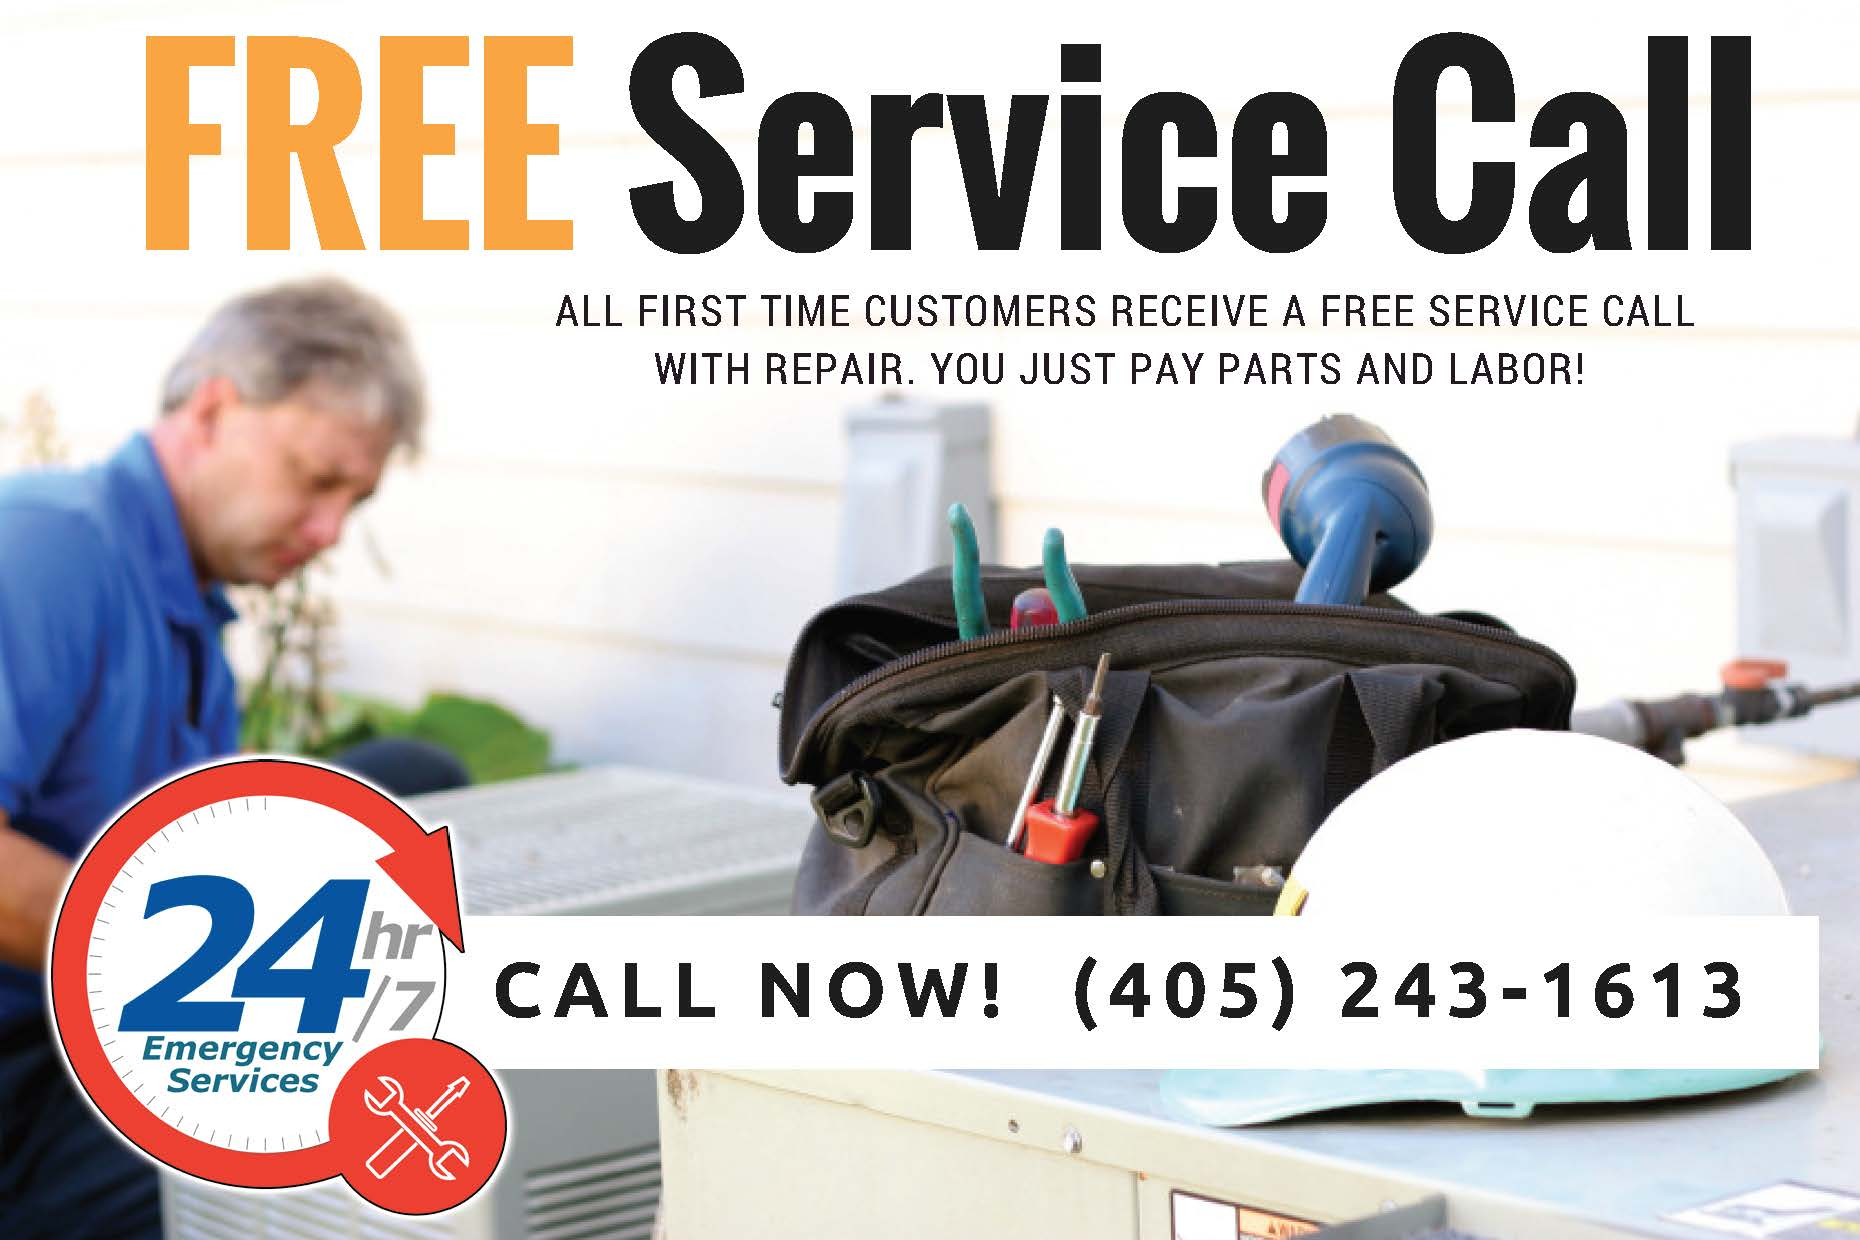 Free Heater or Furnace Service Call for Yukon Oklahoma Residents